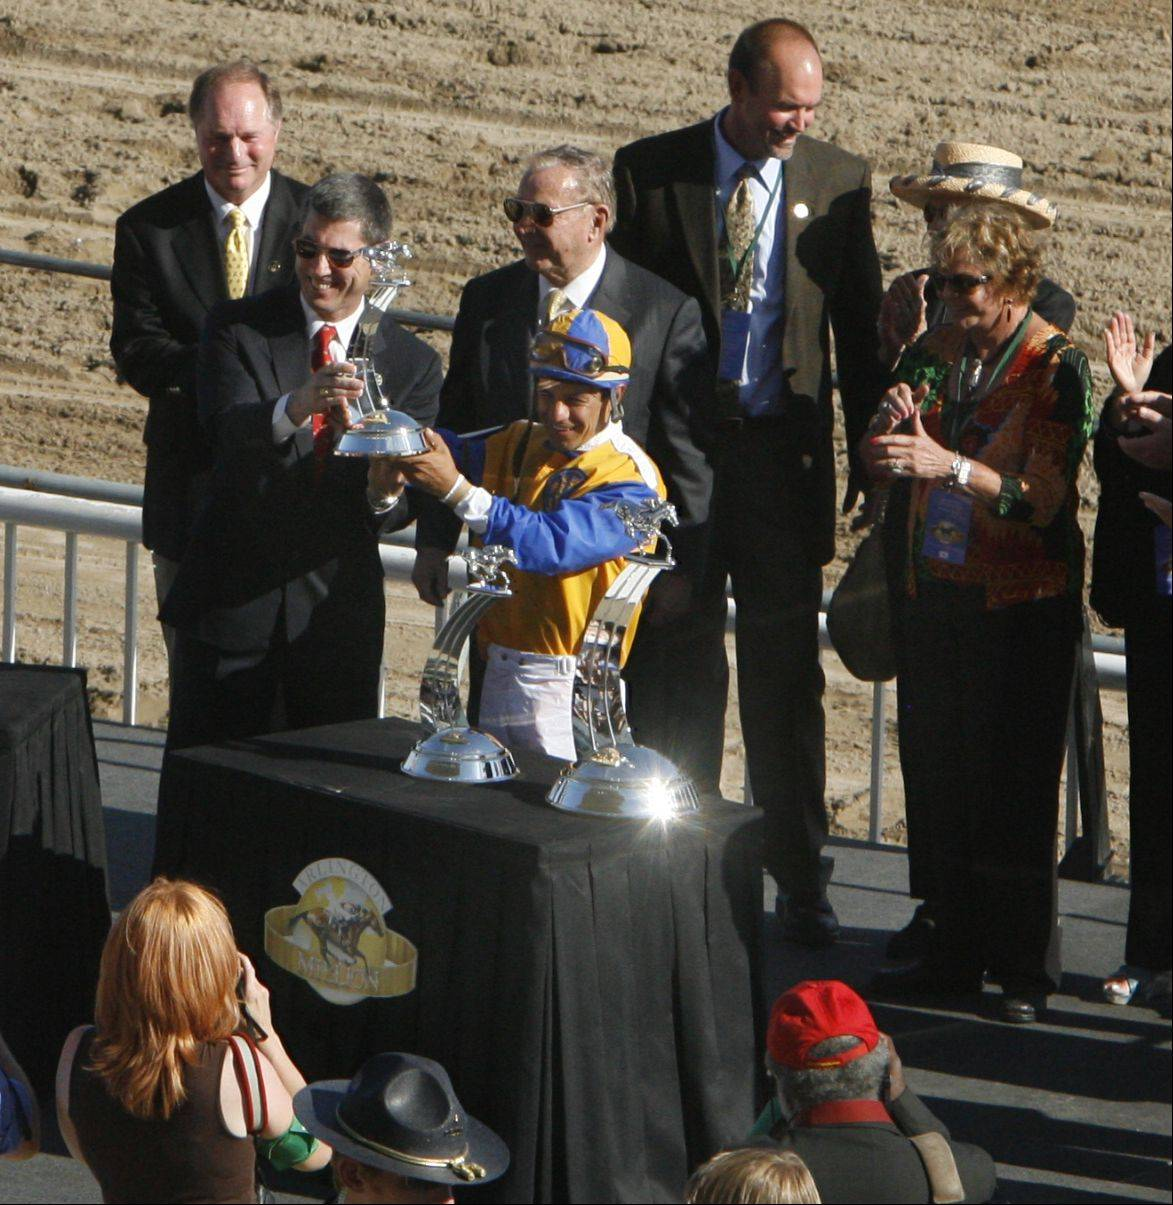 Winning jocky Victor Espinoza gets his trophy for the 24th running of the Arlington Million.